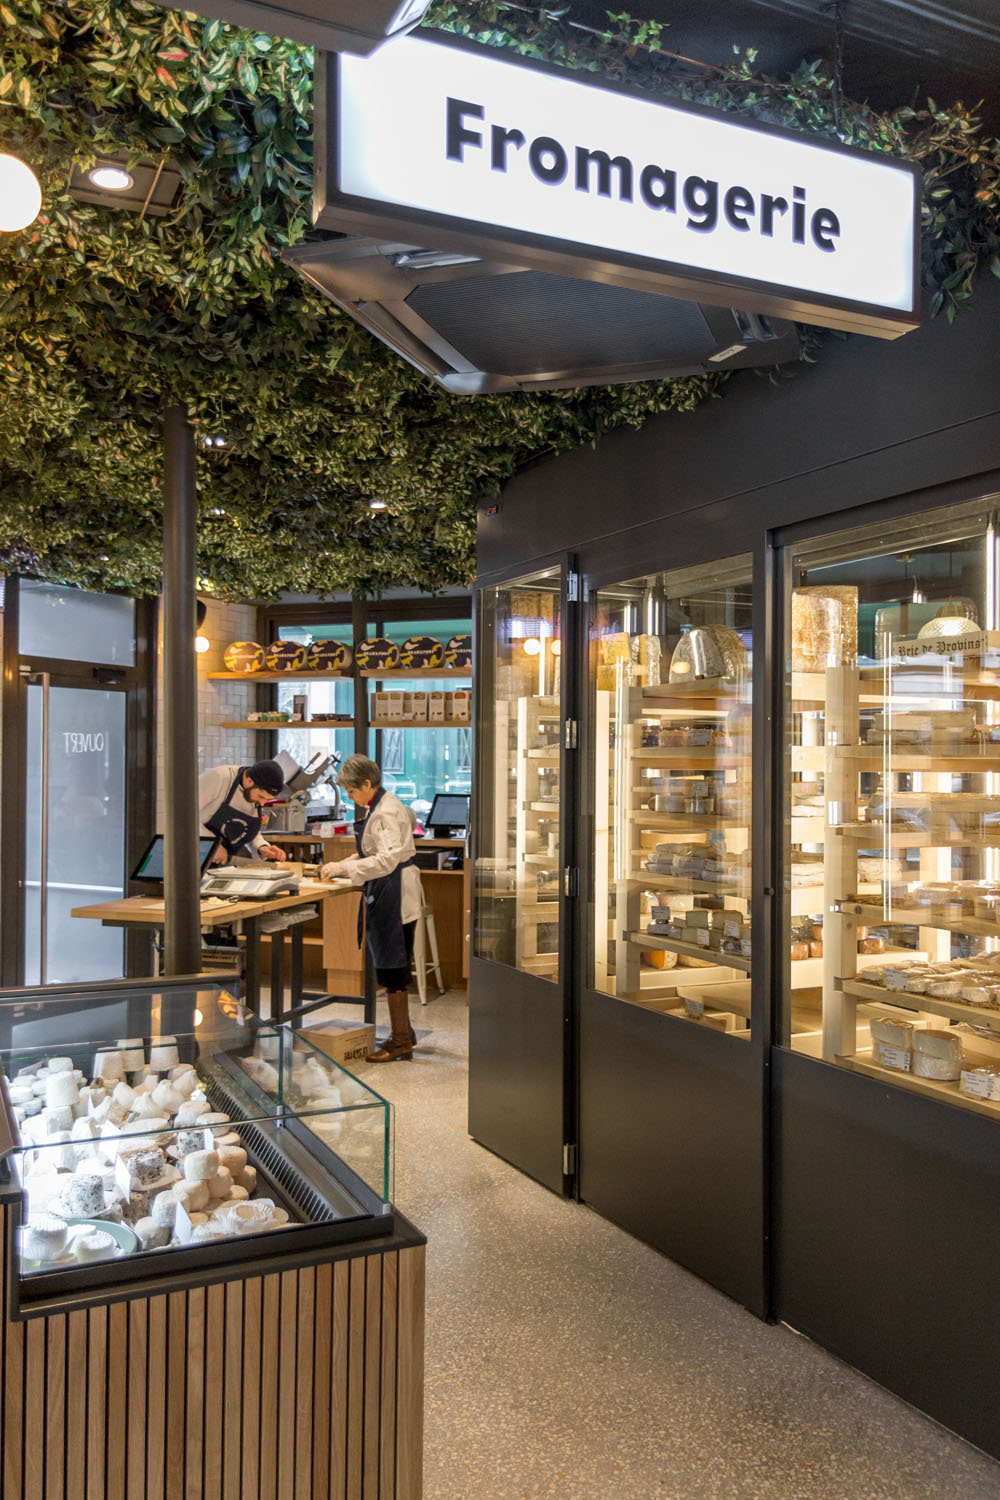 panneau lumineux fromagerie